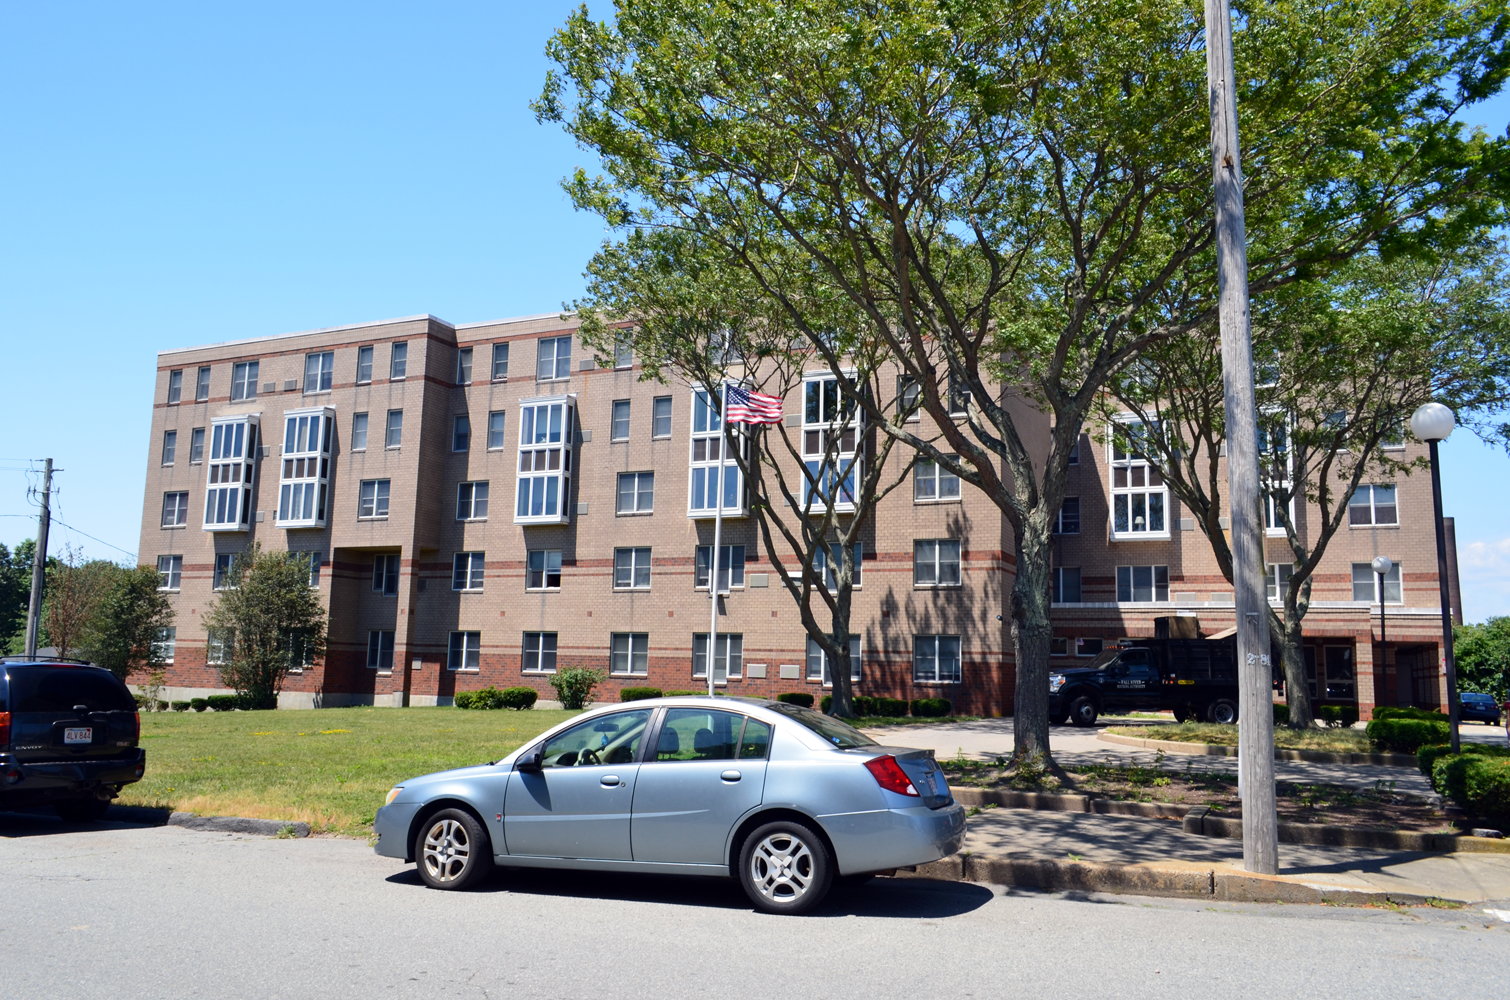 Image of Bates and Towers Apartments in Fall River, Massachusetts